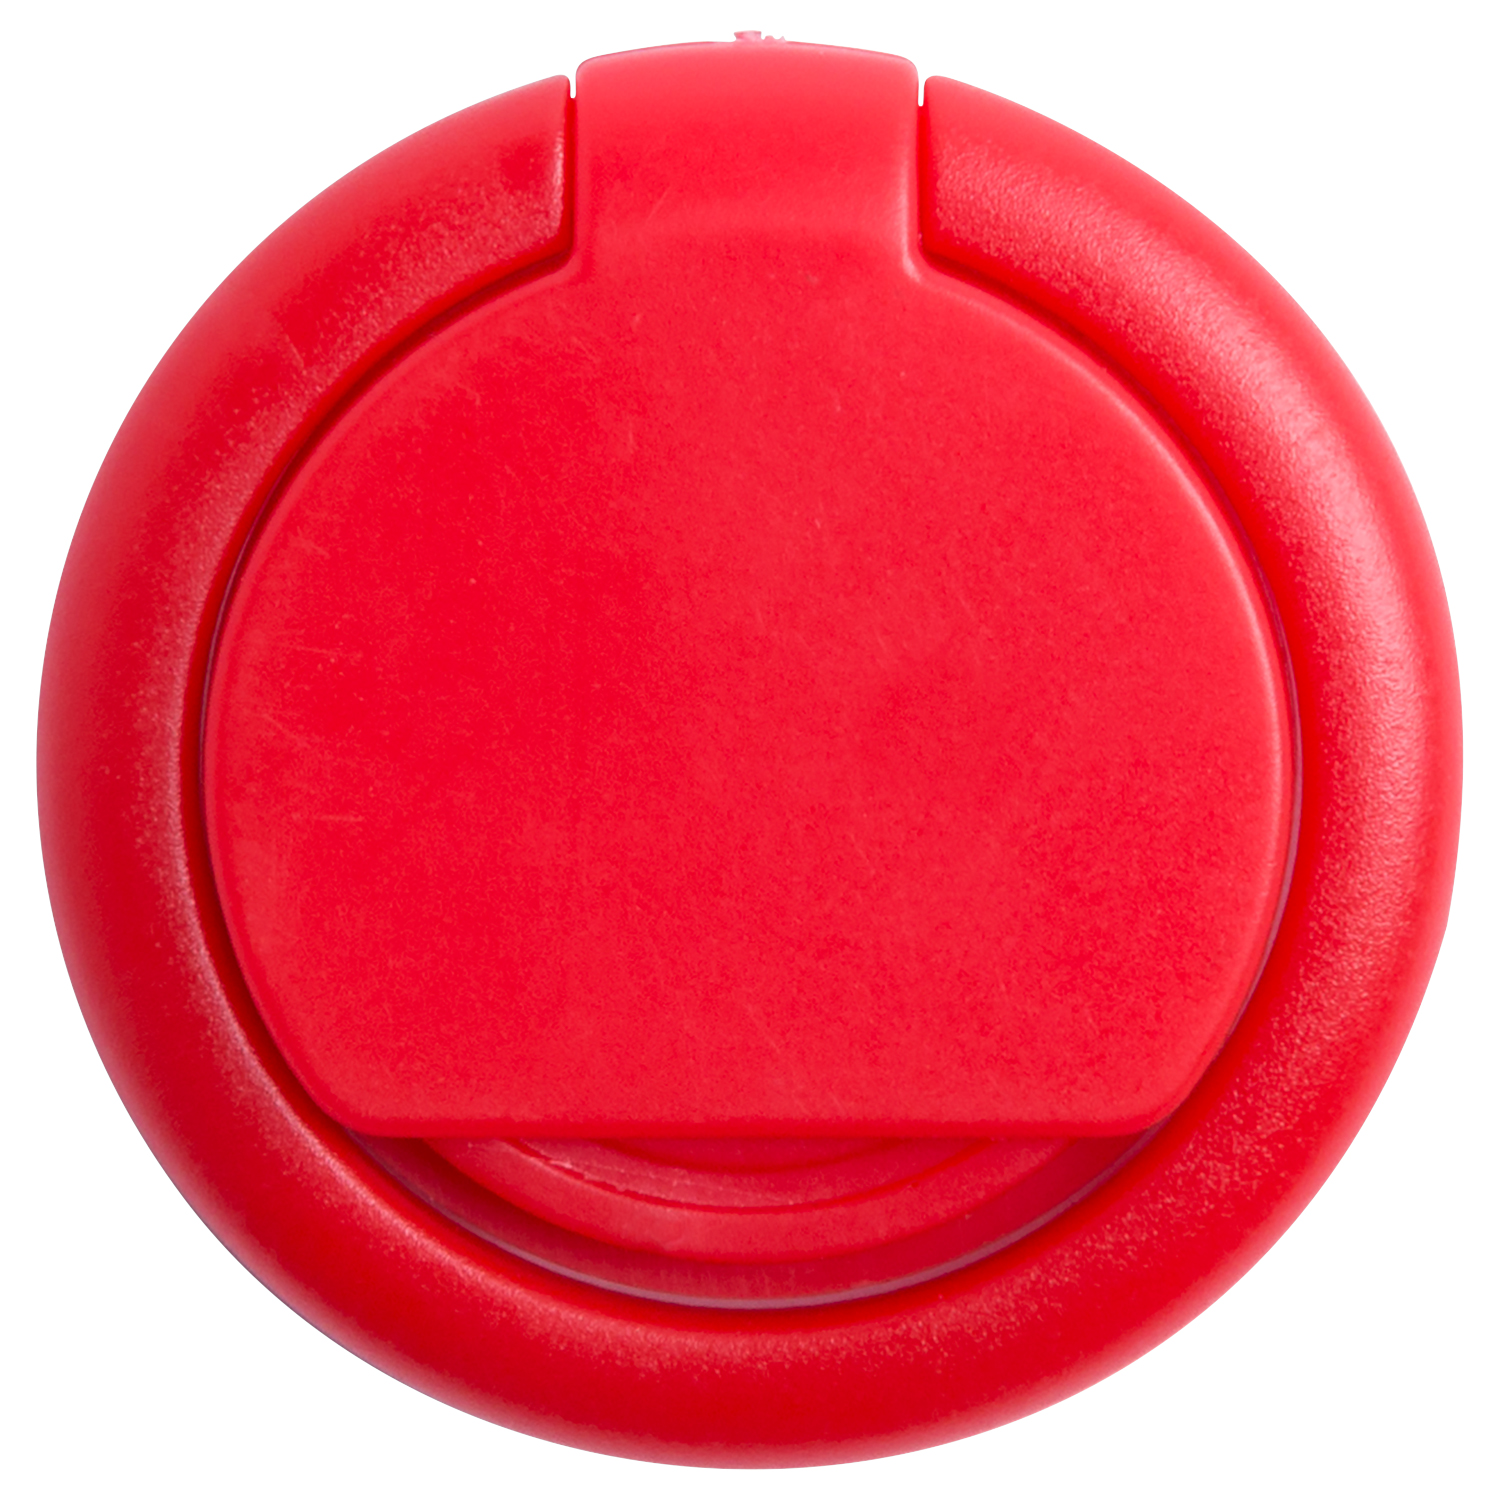 Phone Ring 868 (Plastic phone holder and phone ring) - hmi26868-04 (Red)